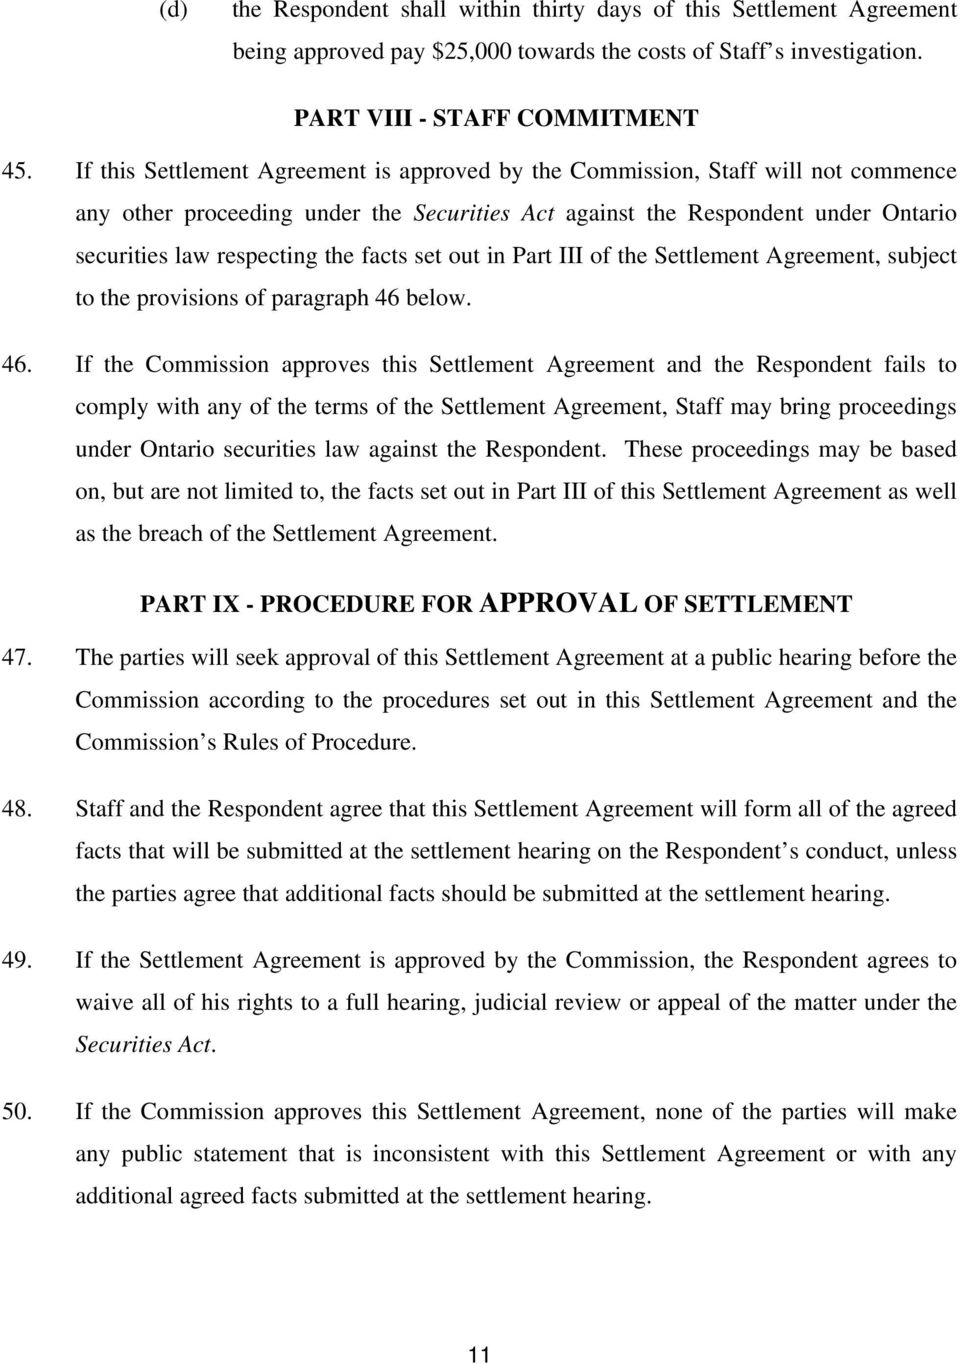 facts set out in Part III of the Settlement Agreement, subject to the provisions of paragraph 46